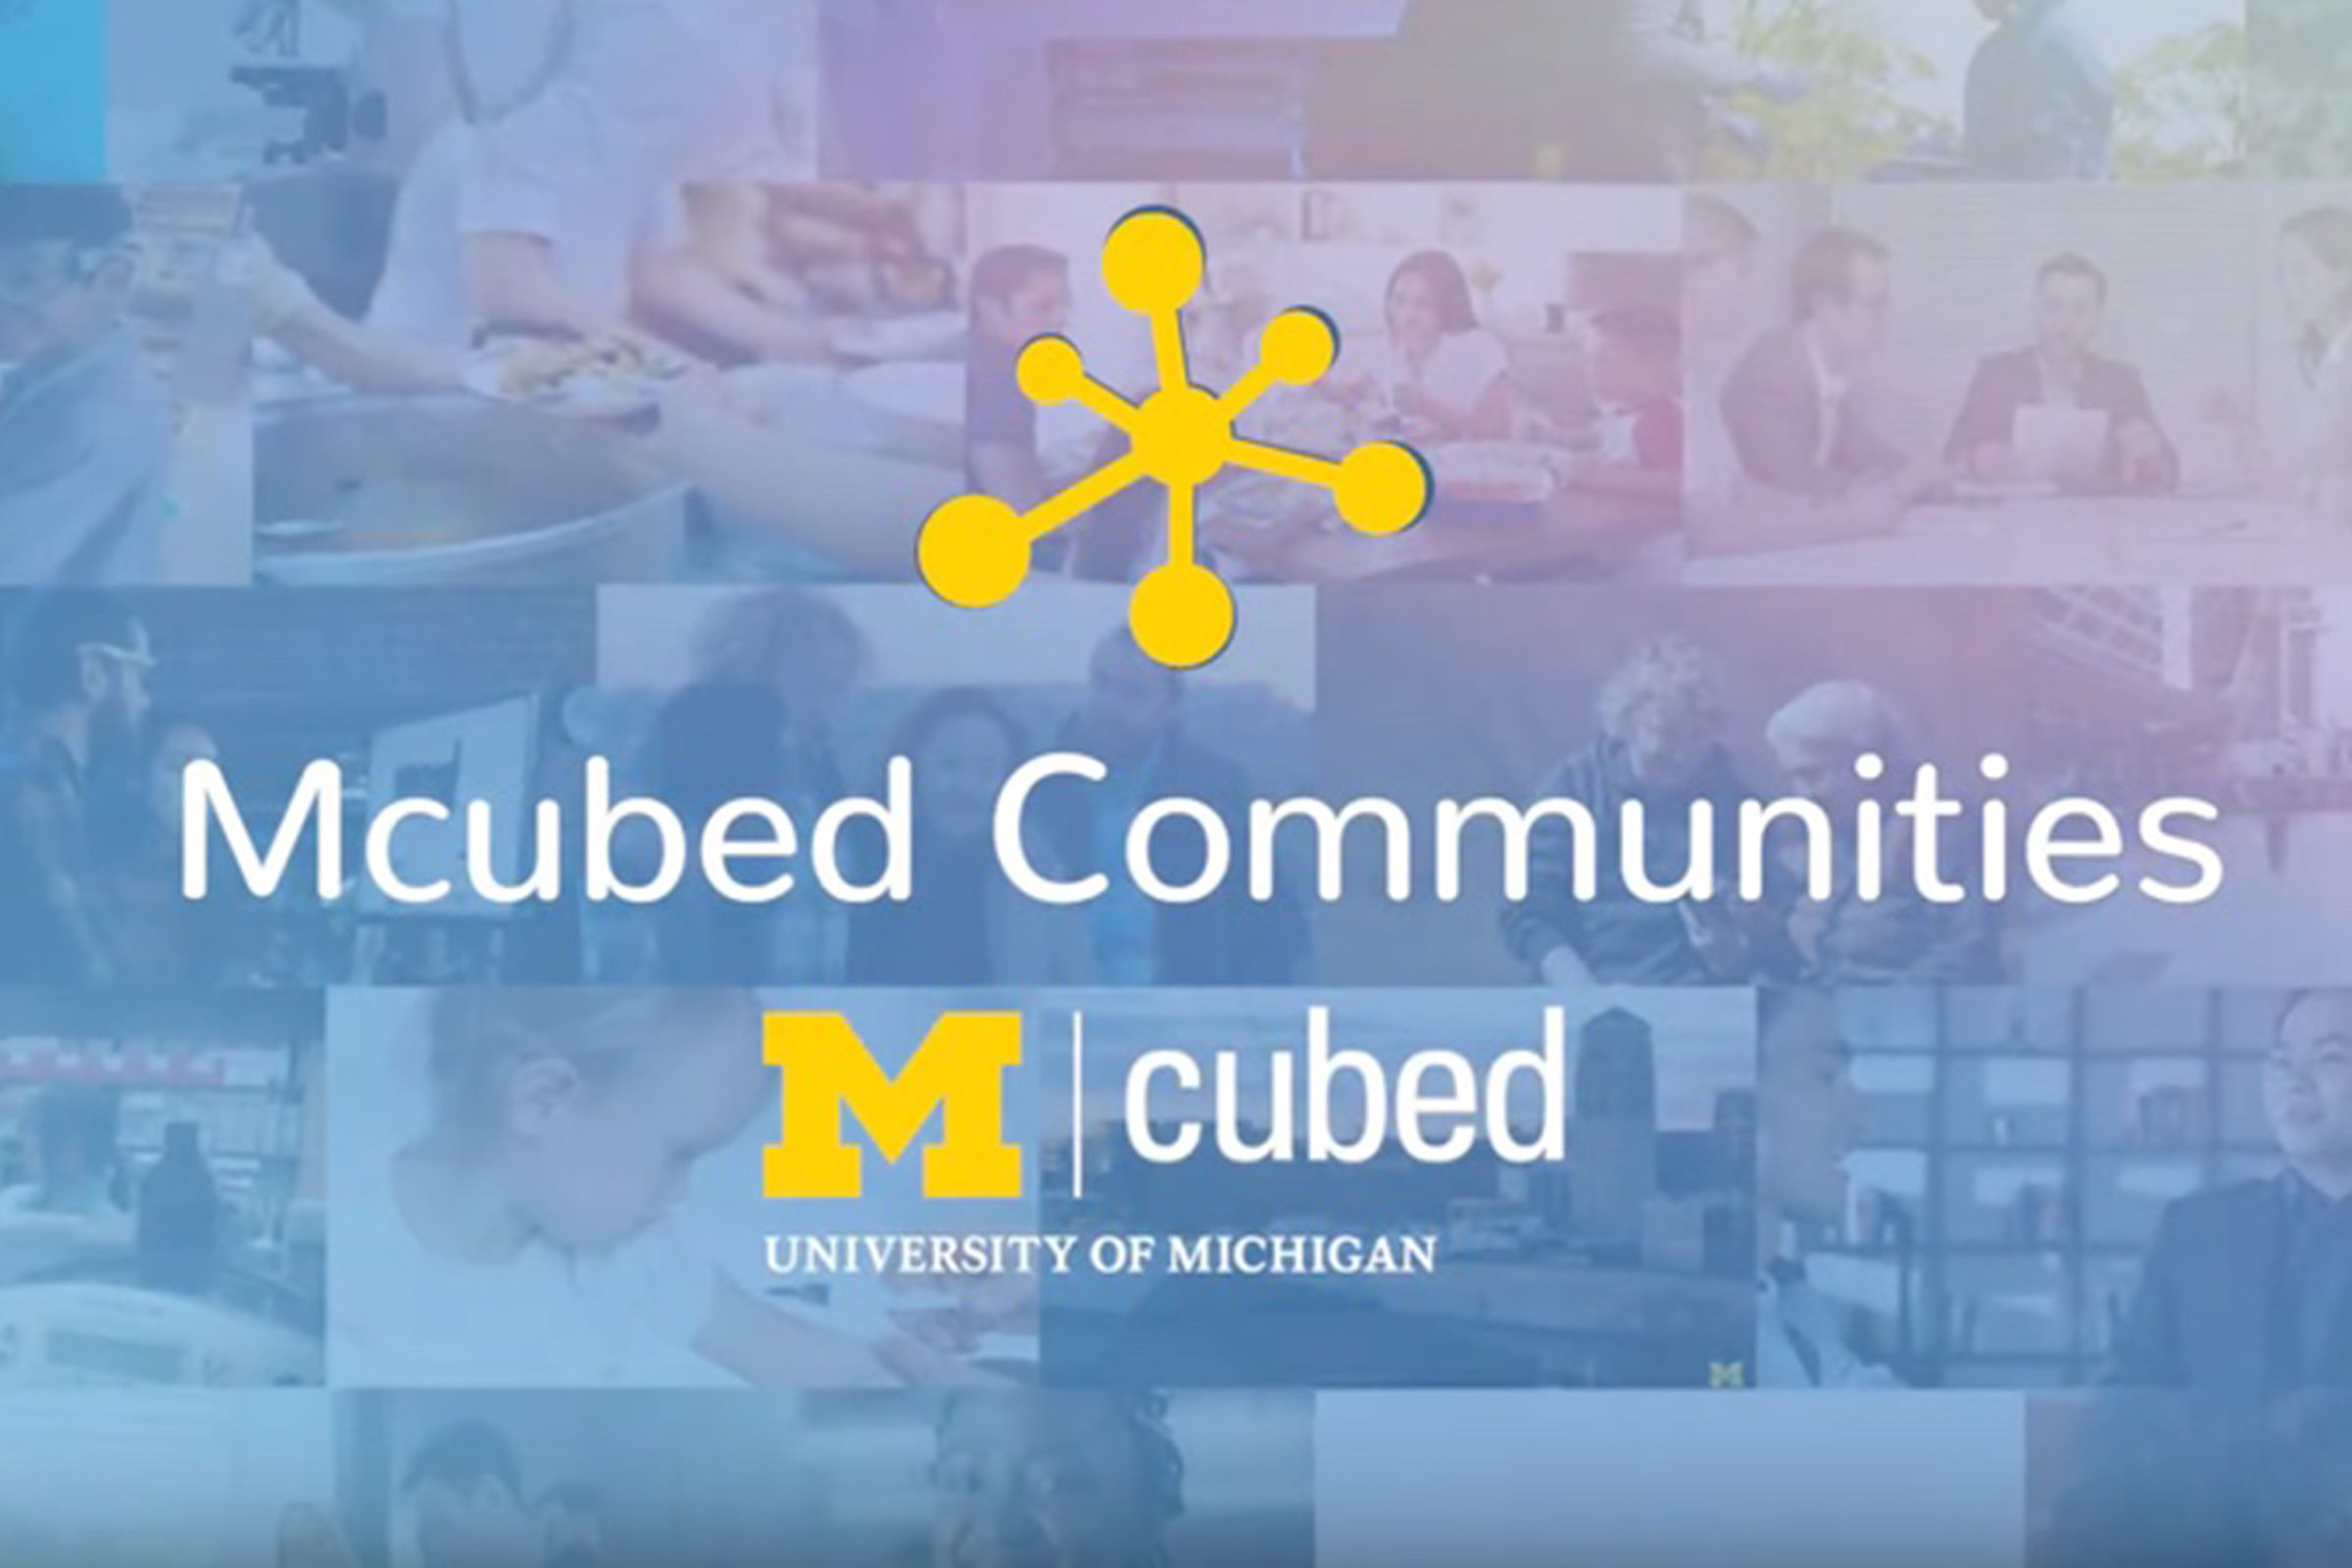 Mcubed Communities launched this week